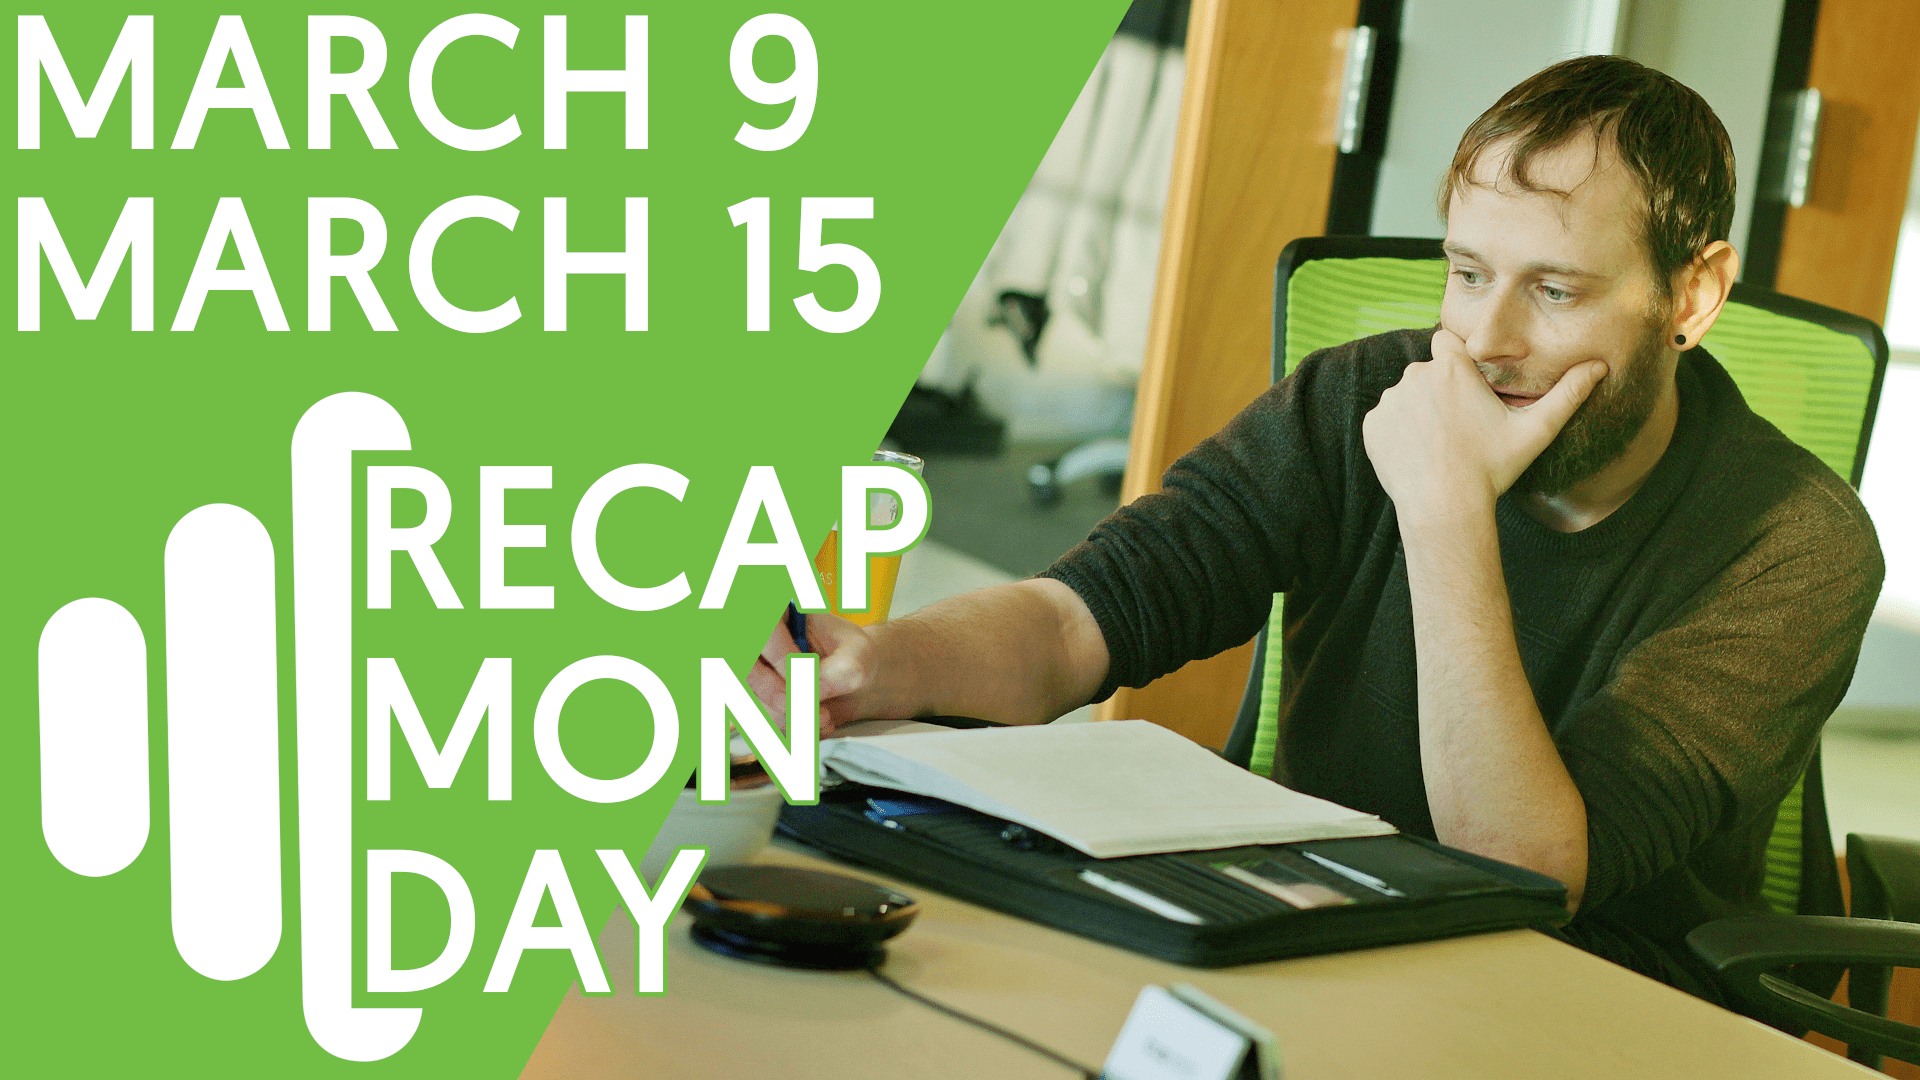 Recap Monday March 9 – March 15